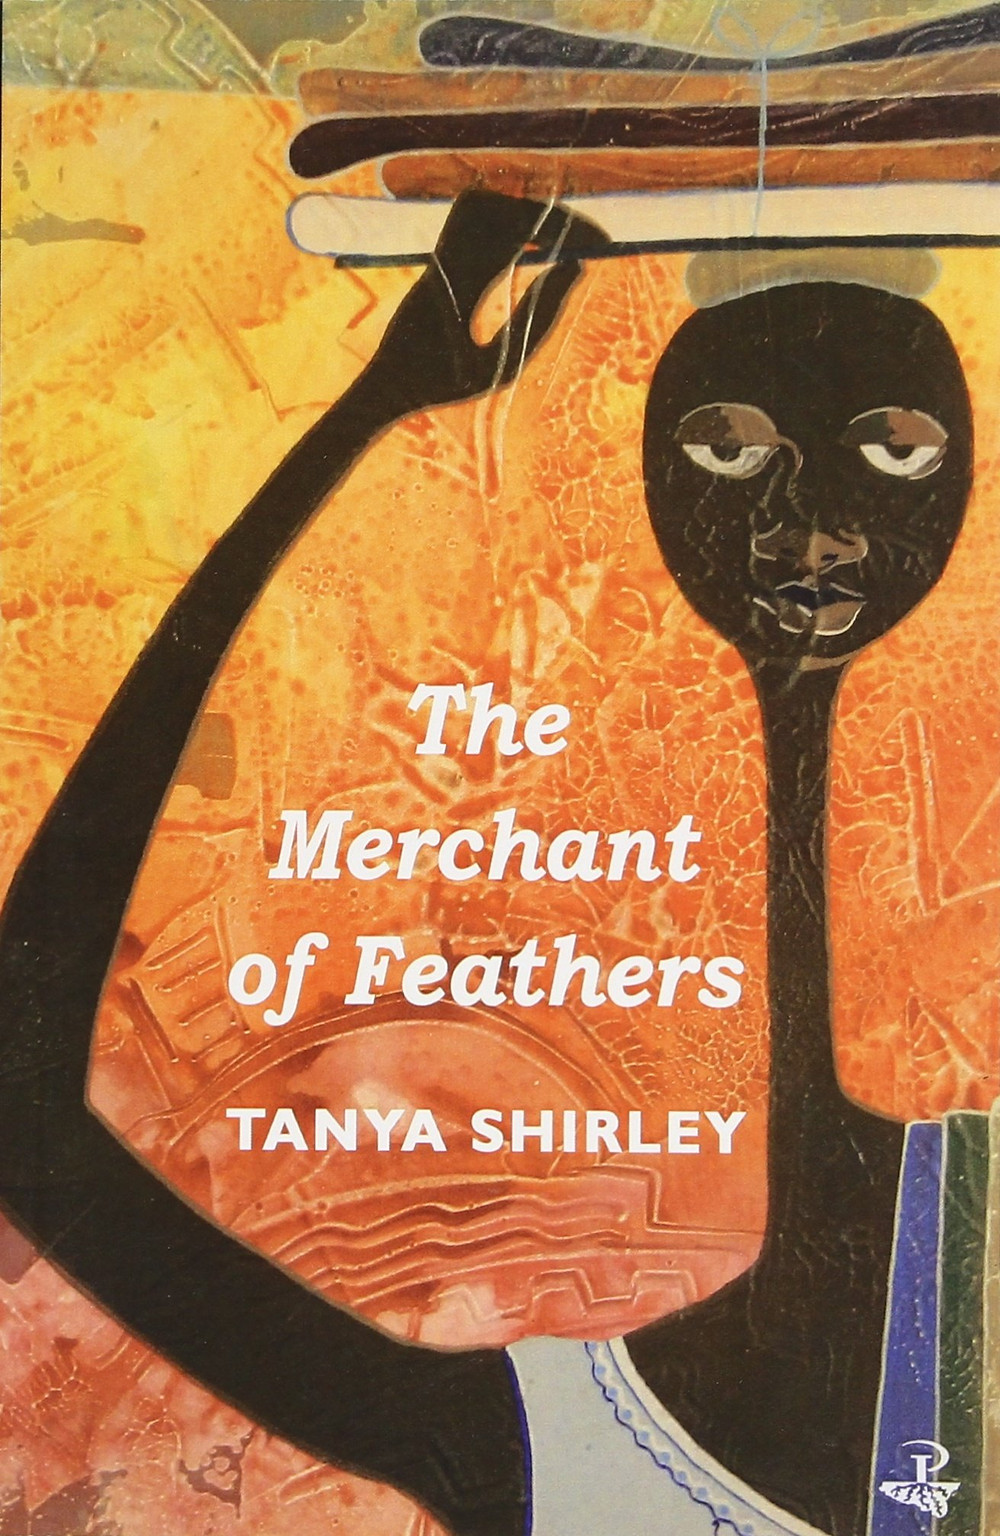 The Merchant of Feathers by Tanya Shirley : the book slut book reviews